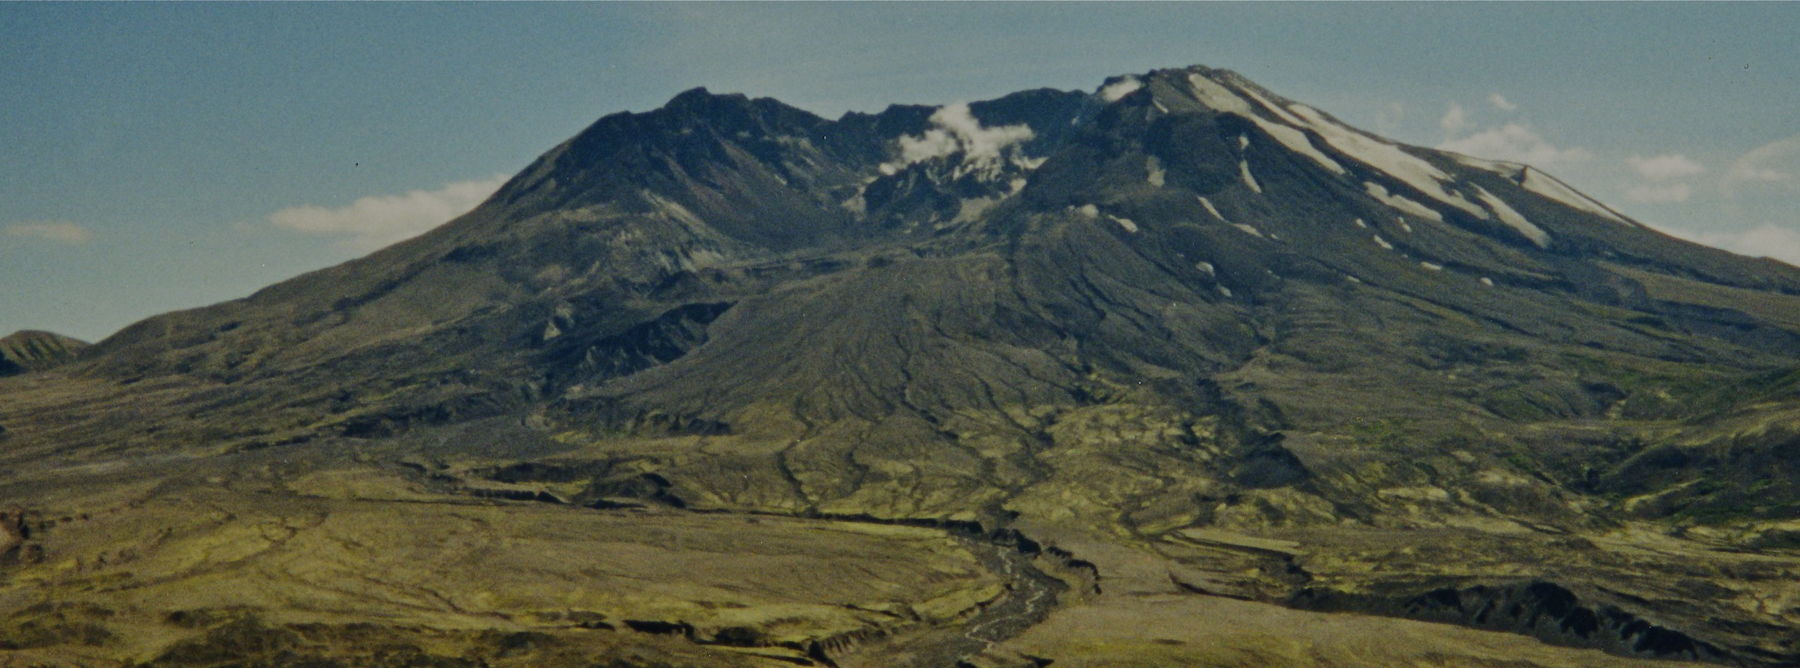 The Great Outdoors - 2016 EyeEm Awards Mount St Helens Washington Nature's Diversities My Favorite Place Finding New Frontiers The Great Outdoors - 2017 EyeEm Awards BYOPaper! The Week On EyeEm